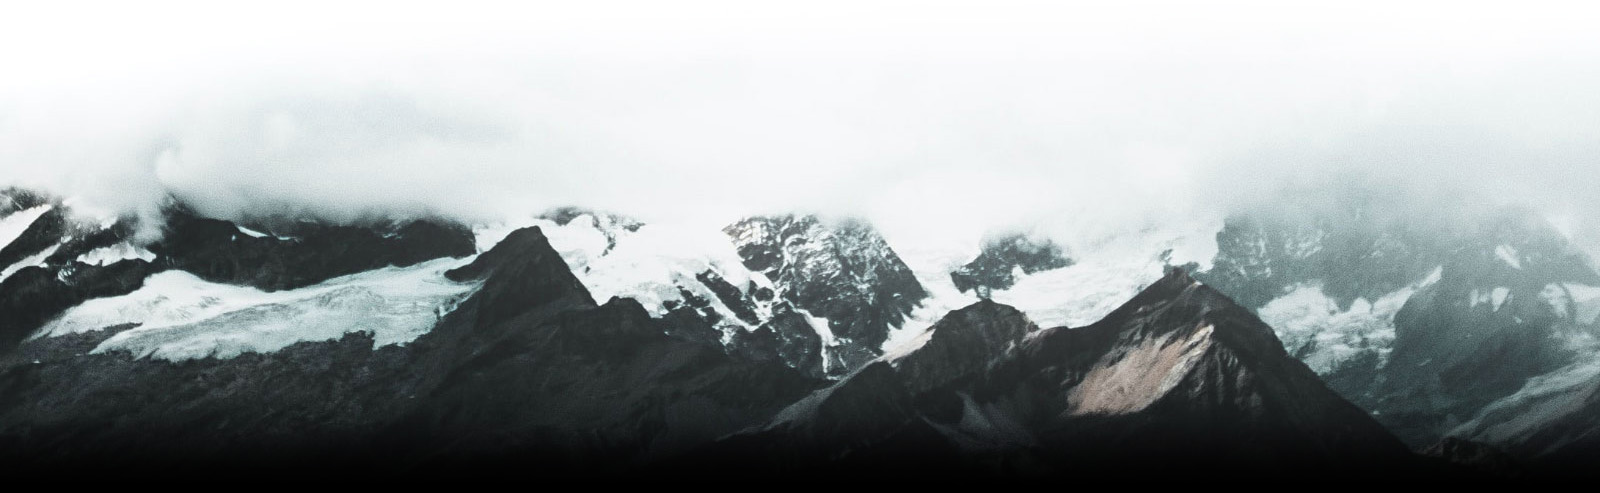 Cloud Topped Snowy Mountains